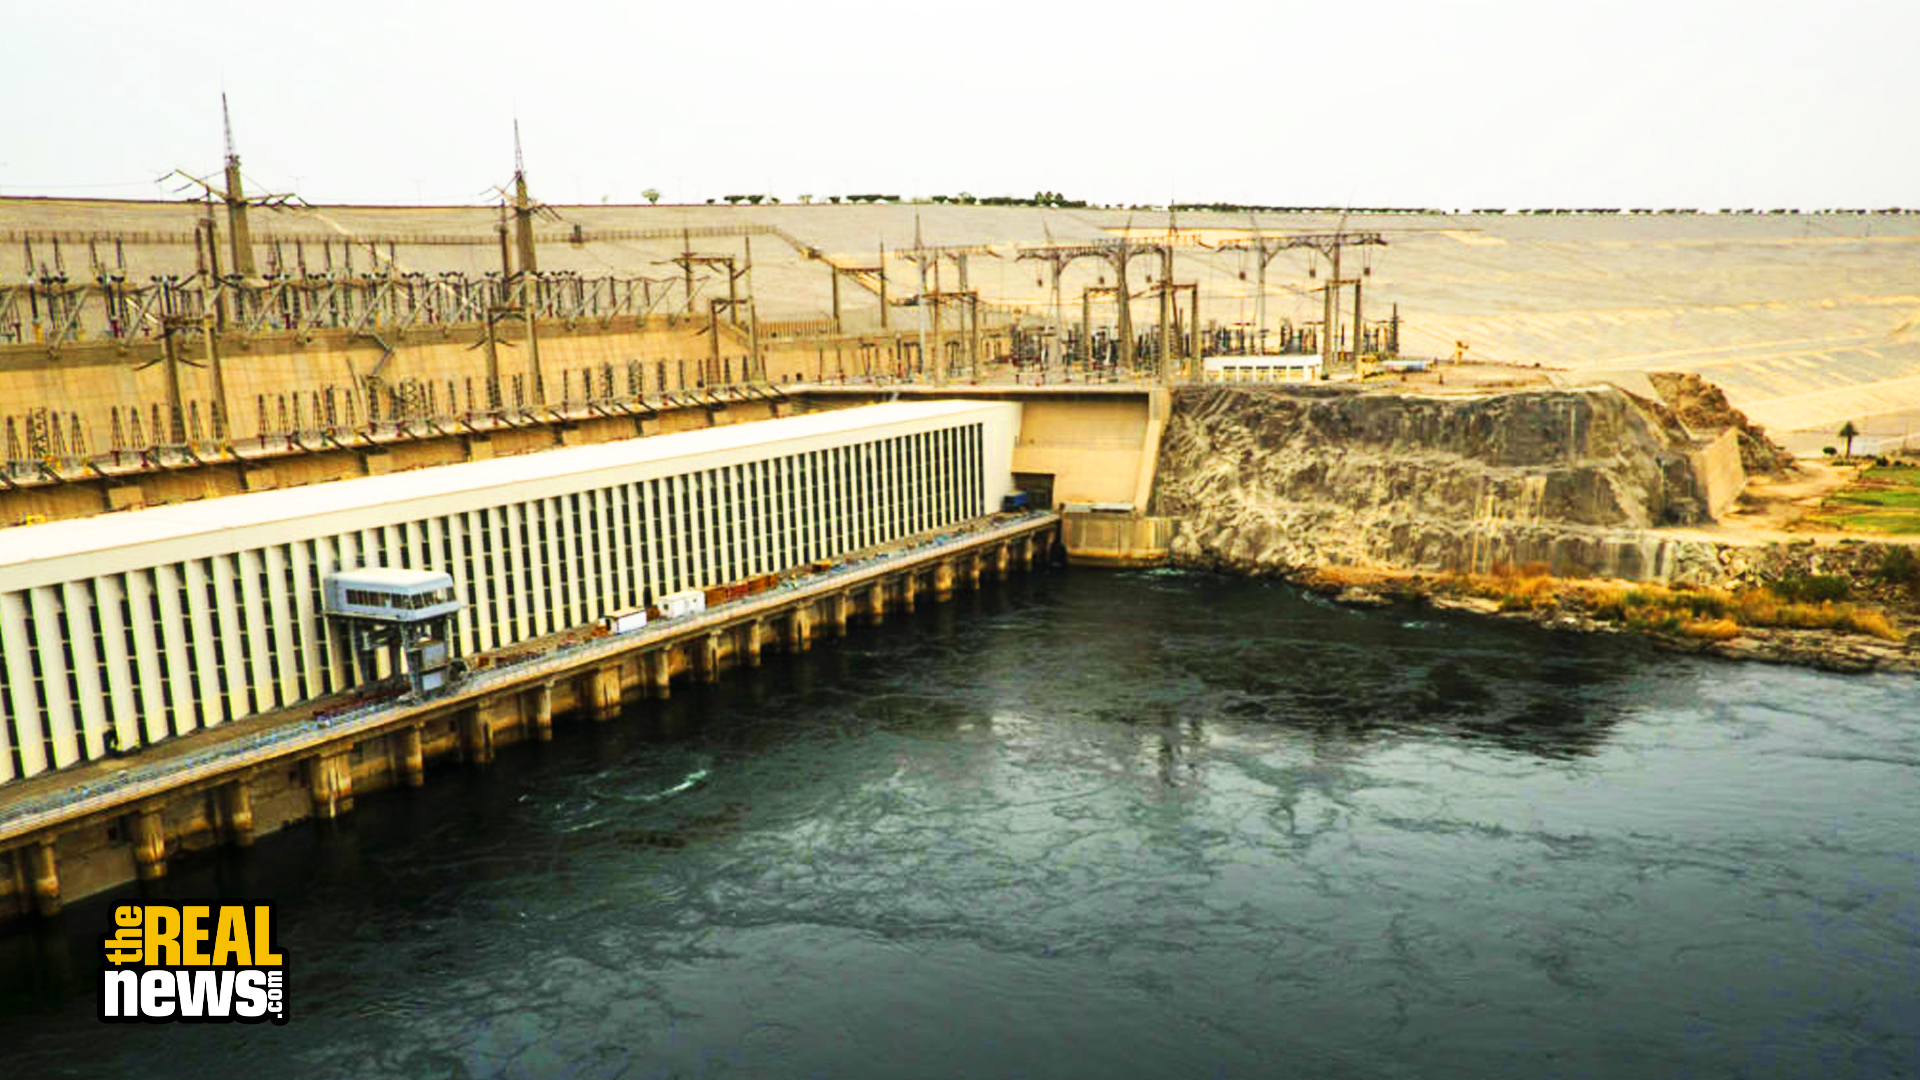 The Proposed Nile Dam Is A Wedge Between Egypt, Ethiopia, And Sudan